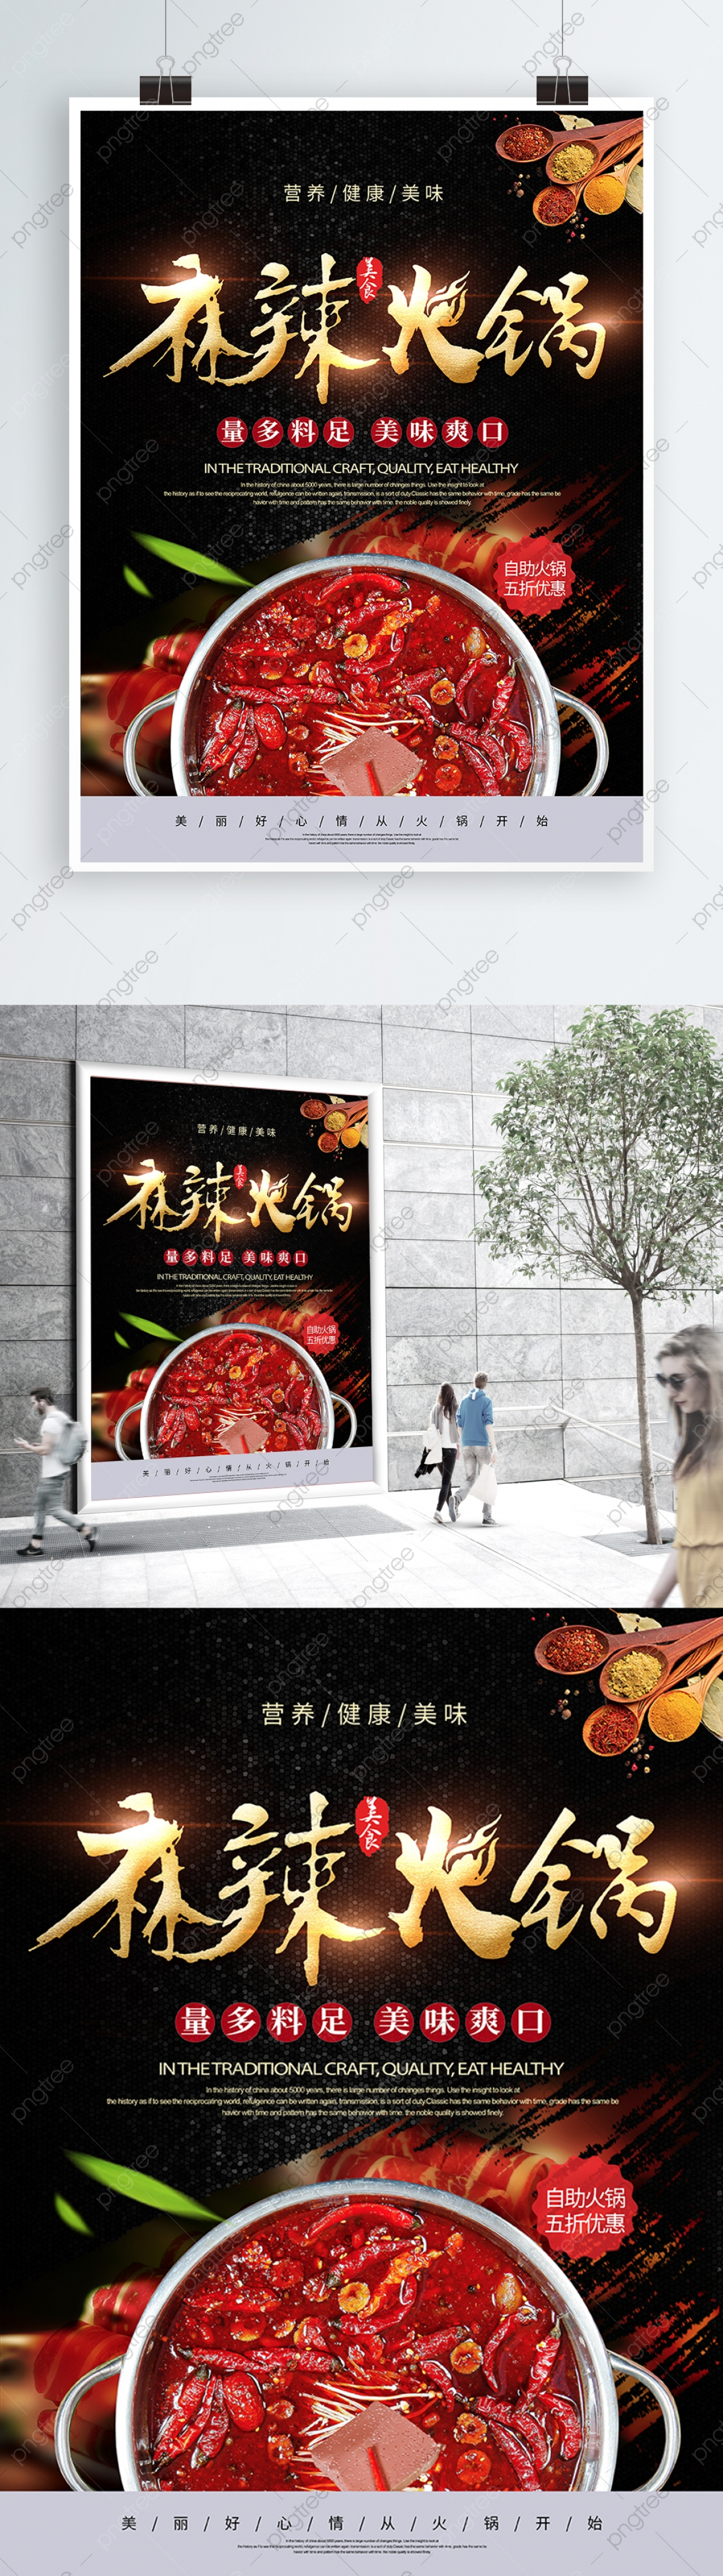 Hot Pot Restaurant Full Set Of Promotional Single Discount Card Gift Voucher Hot Pot Shop Full Set Of Promotional Orders Discount Cards Gift Vouchers Template For Free Download On Pngtree